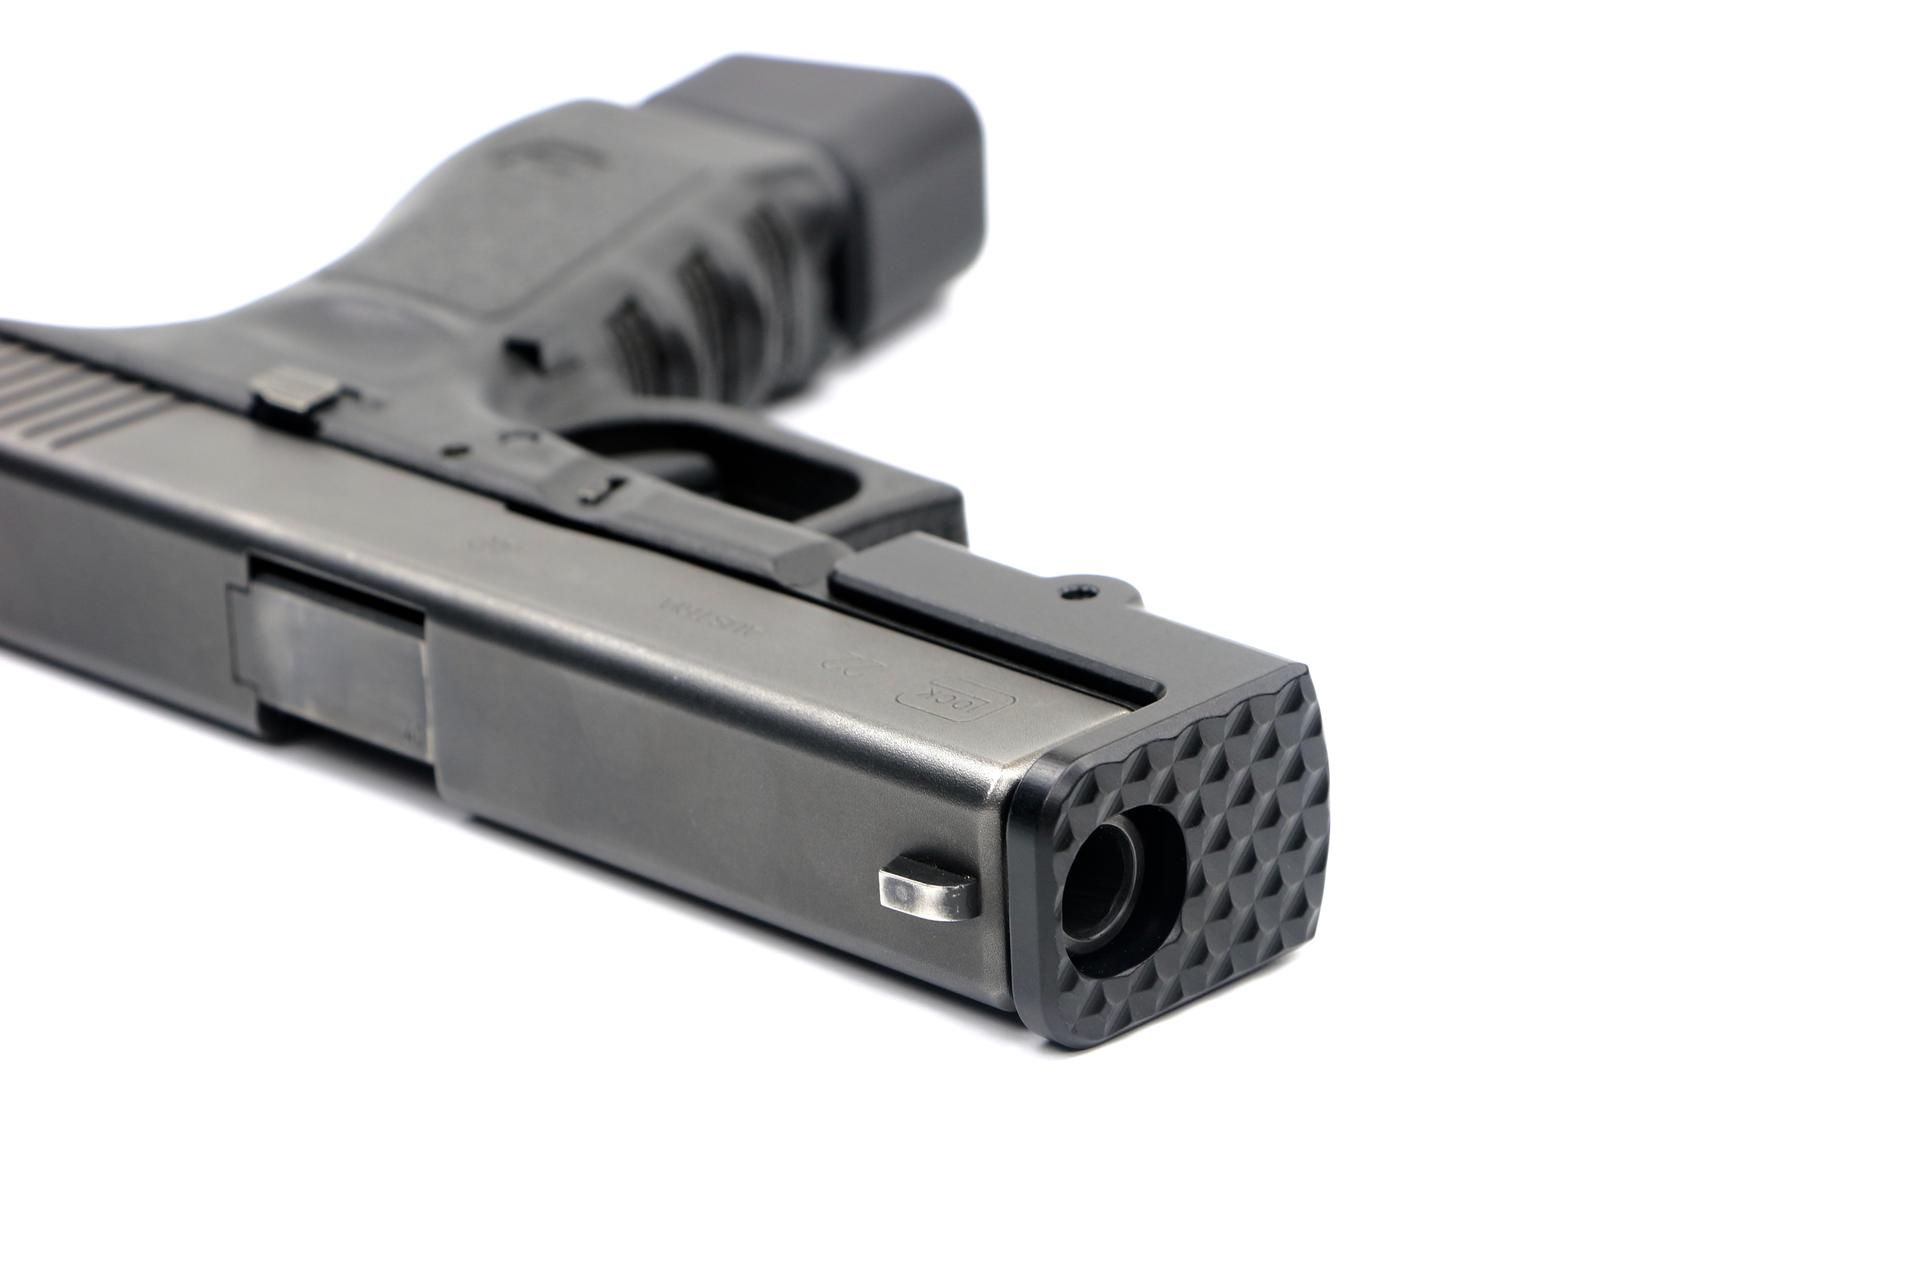 GLOCK STAND OFF DEVICE STANDARD SIZE